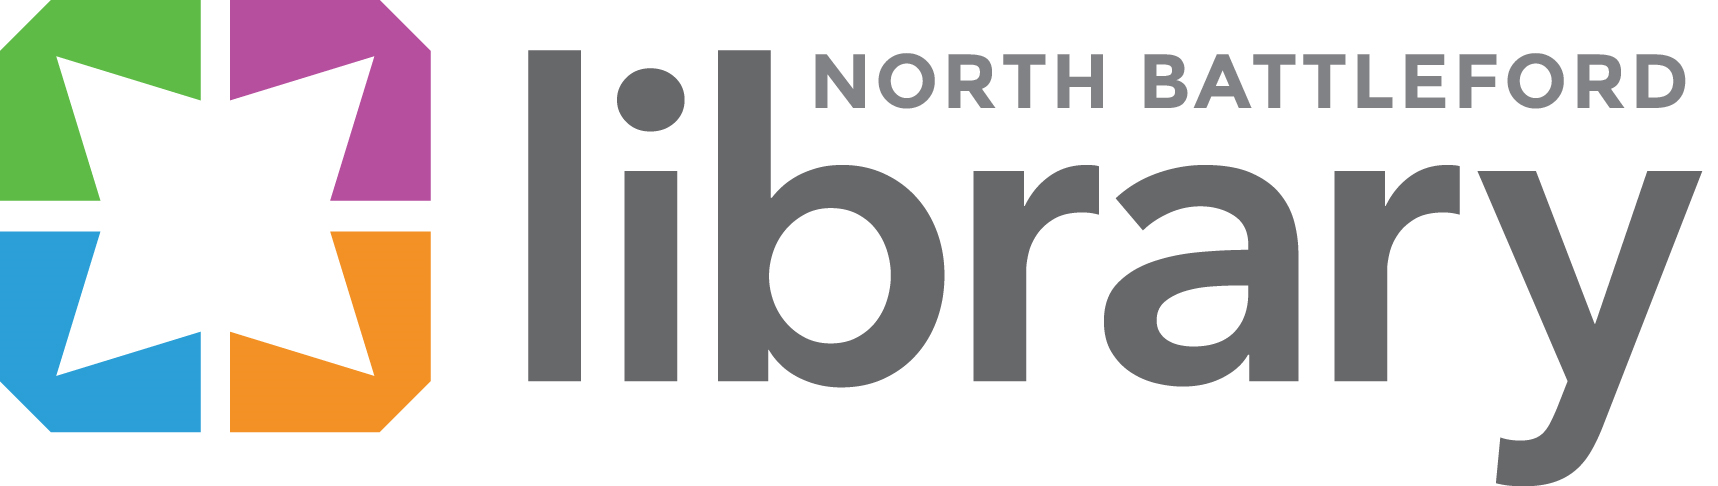 North Battleford Public Library